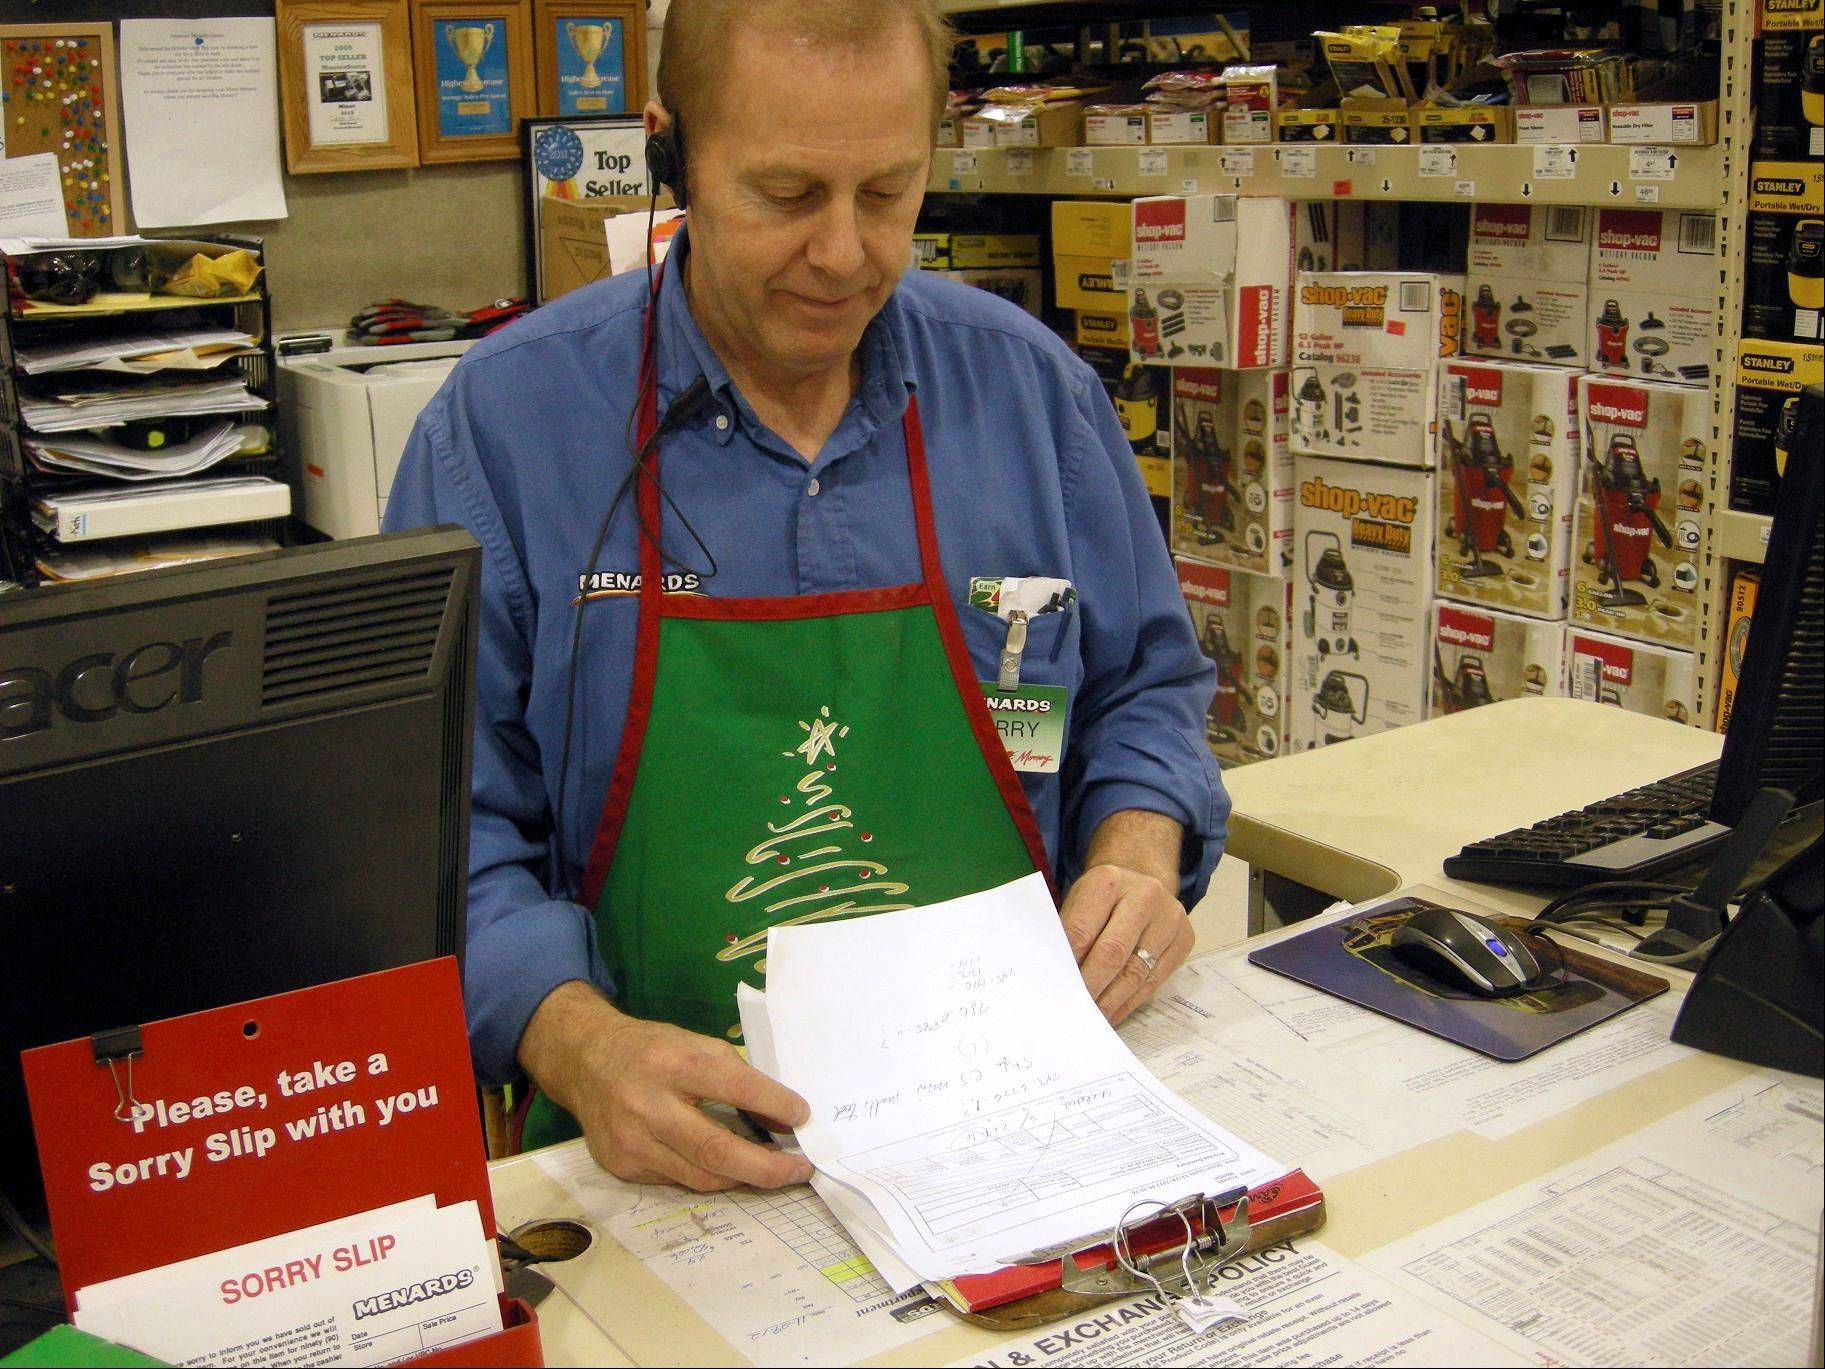 Larry Boutilier, hardware manager, who has been with the Minot, N.D. Menards since 1996, looks over paperwork at the storey in Thursday. The home improvement retailer says it will hire workers from its home base in Wisconsin and fly them to North Dakota to staff a store in Minot, which is near the state's booming oil patch and has more jobs than takers.